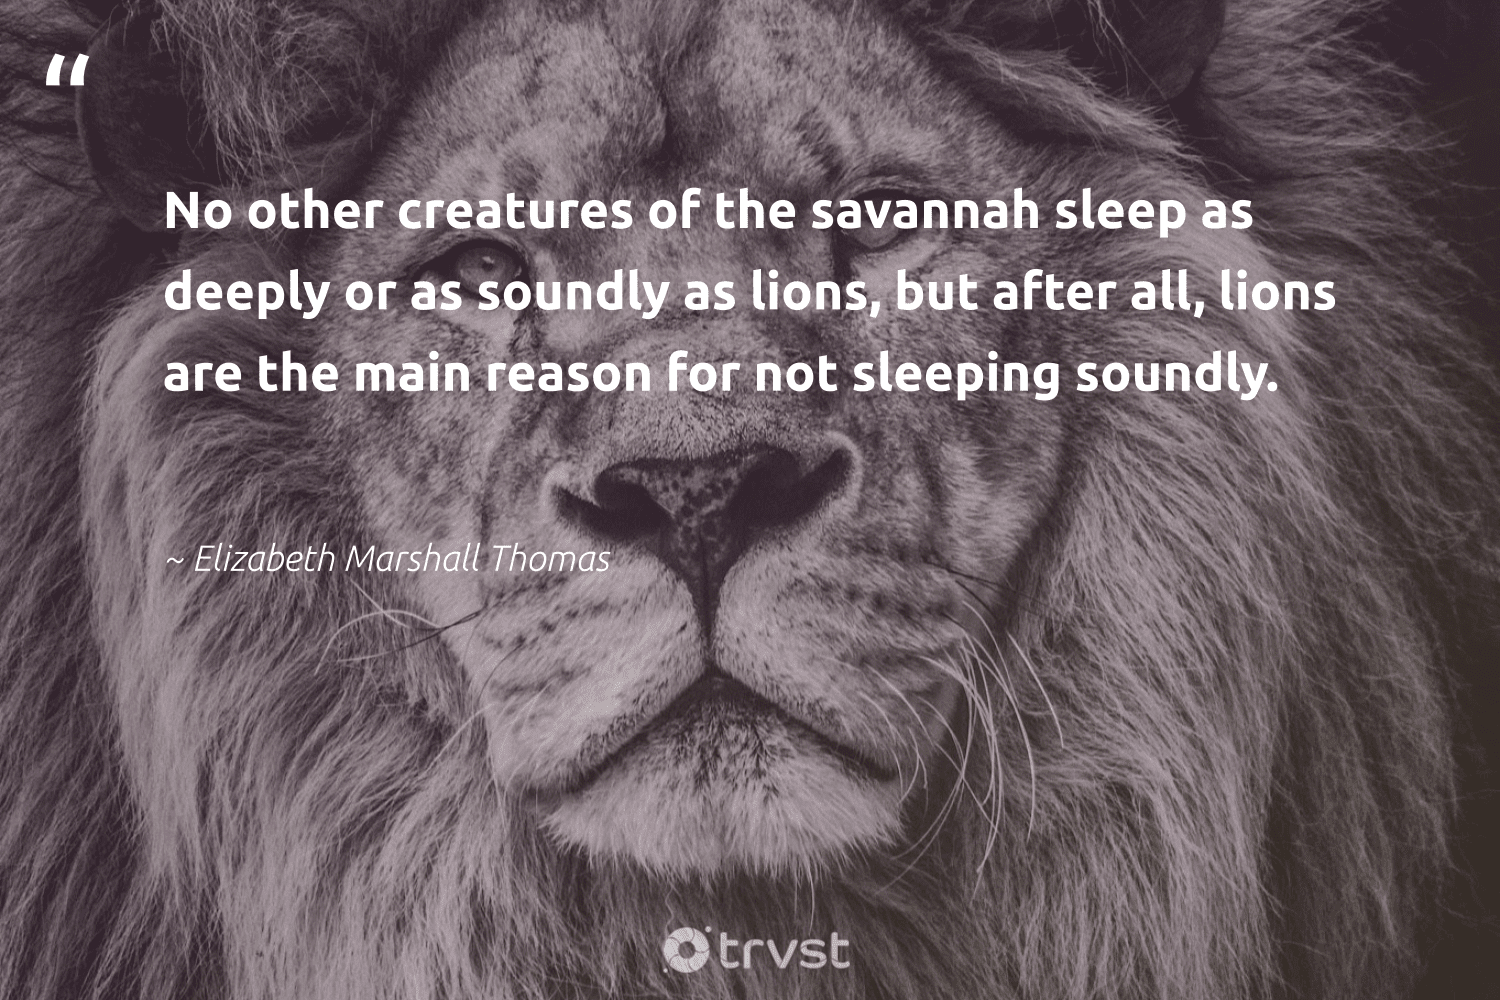 """""""No other creatures of the savannah sleep as deeply or as soundly as lions, but after all, lions are the main reason for not sleeping soundly.""""  - Elizabeth Marshall Thomas #trvst #quotes #lions #protectnature #takeaction #sustainability #socialchange #wildlifeprotection #dotherightthing #big5 #ecoconscious #conservation"""